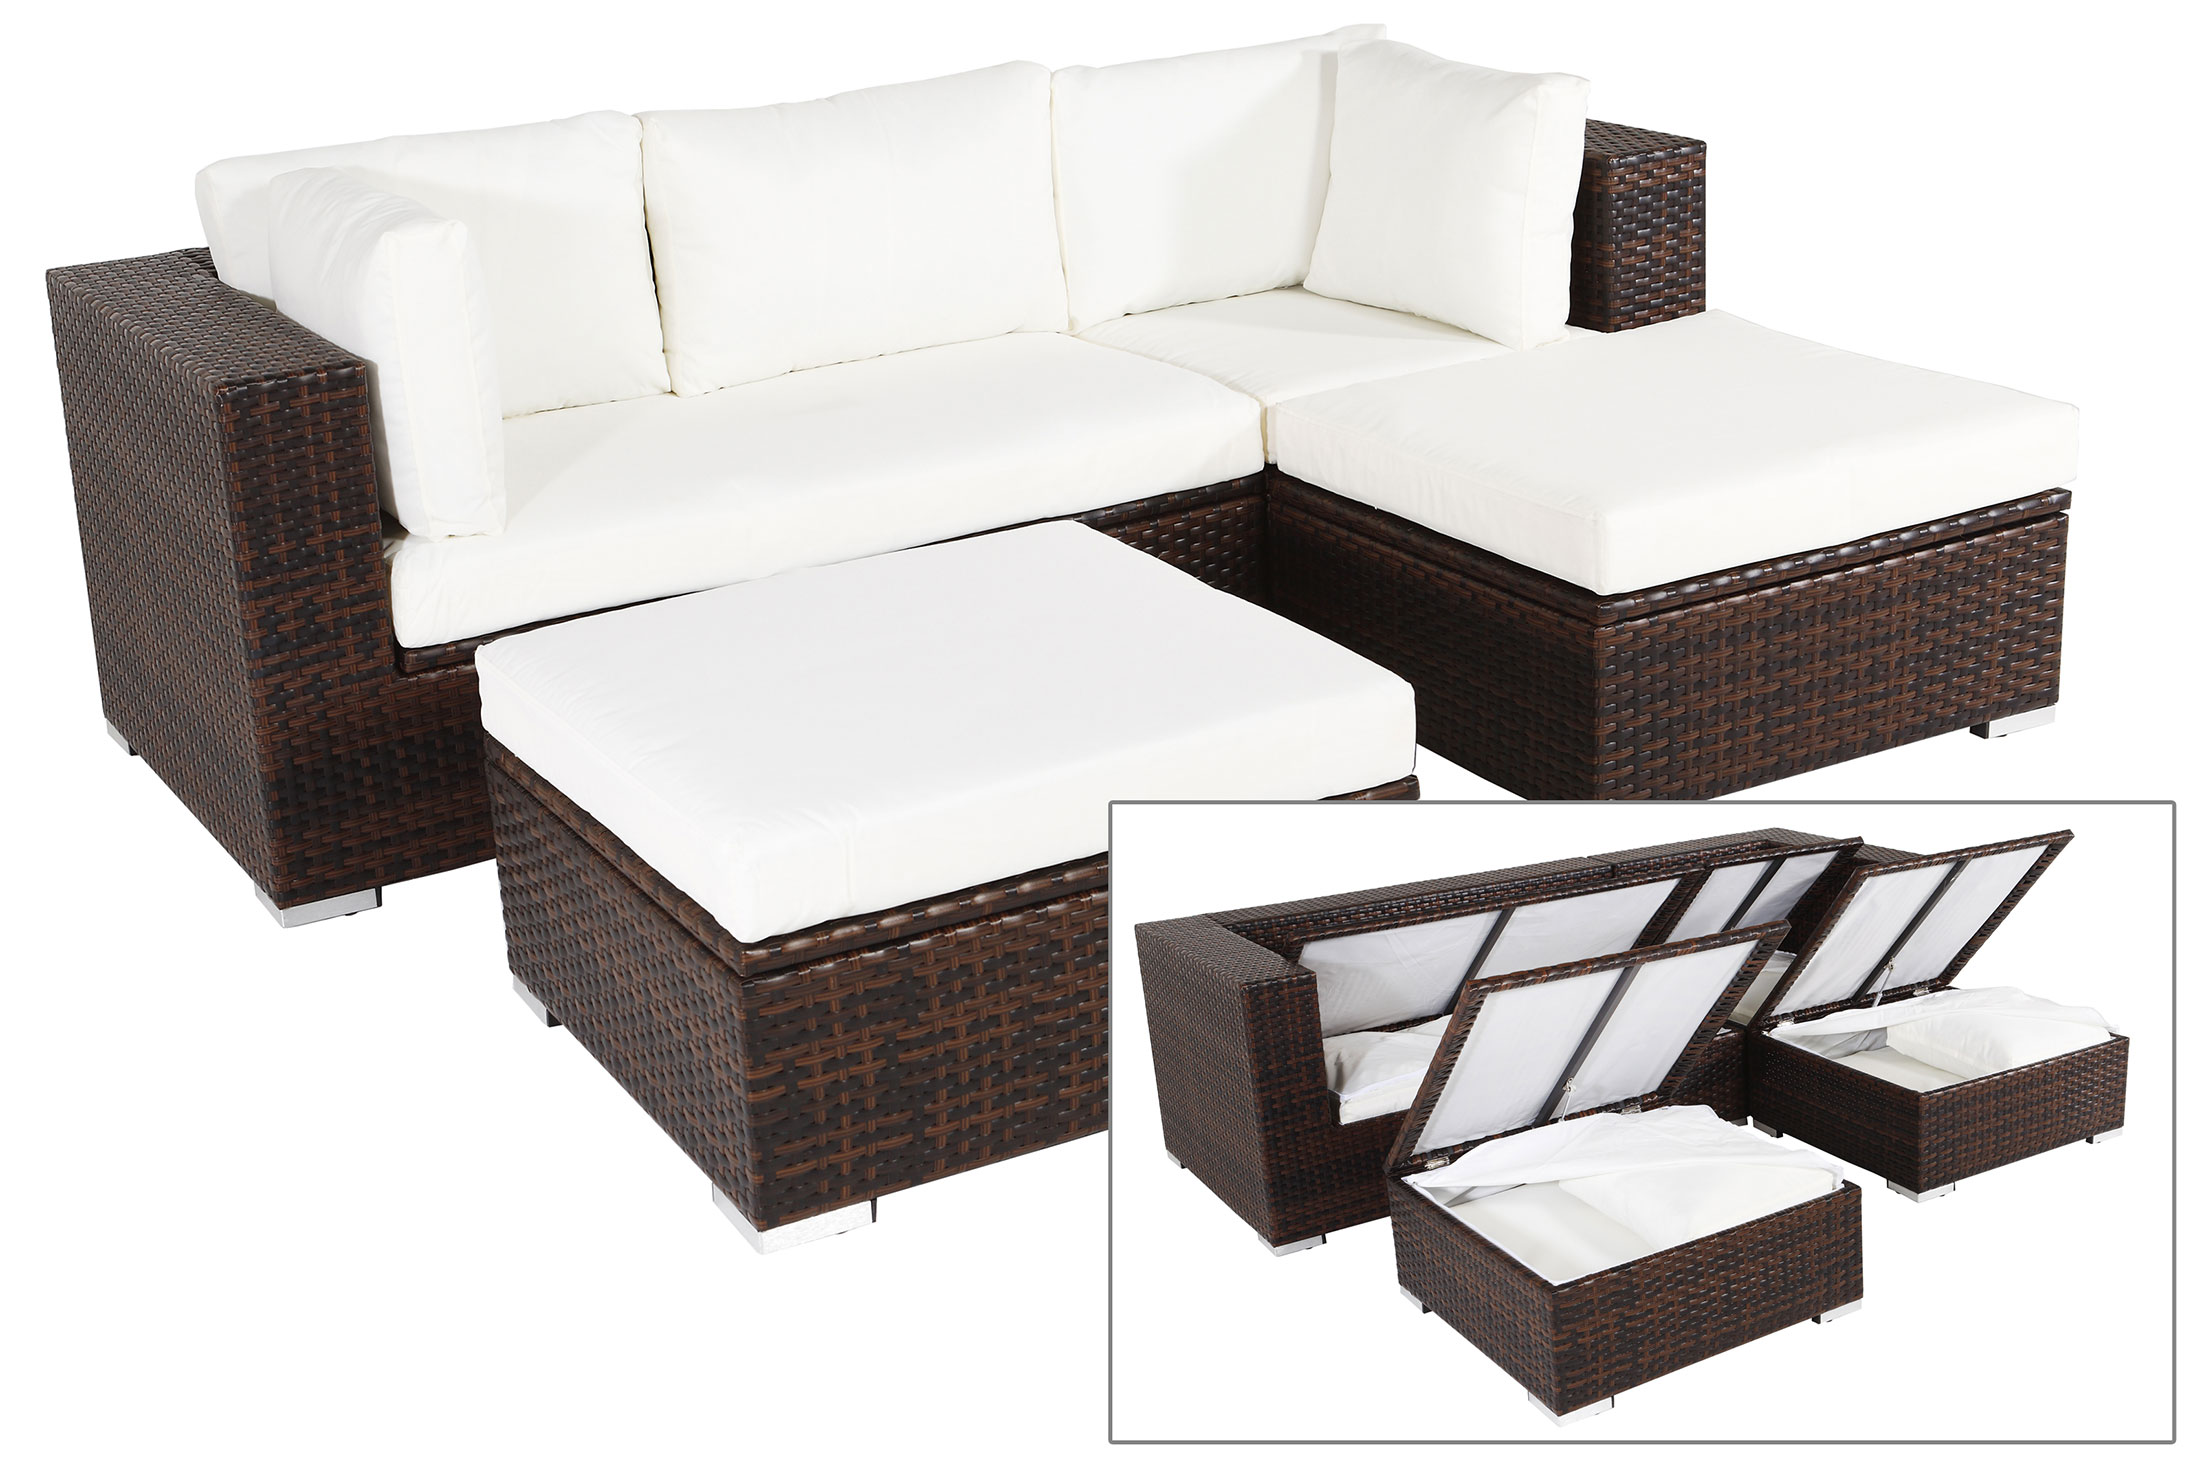 gartenmbel rattan set cheap clp polyrattan gartenmbel loungeset bergen alugestell sitzpltze ldt. Black Bedroom Furniture Sets. Home Design Ideas